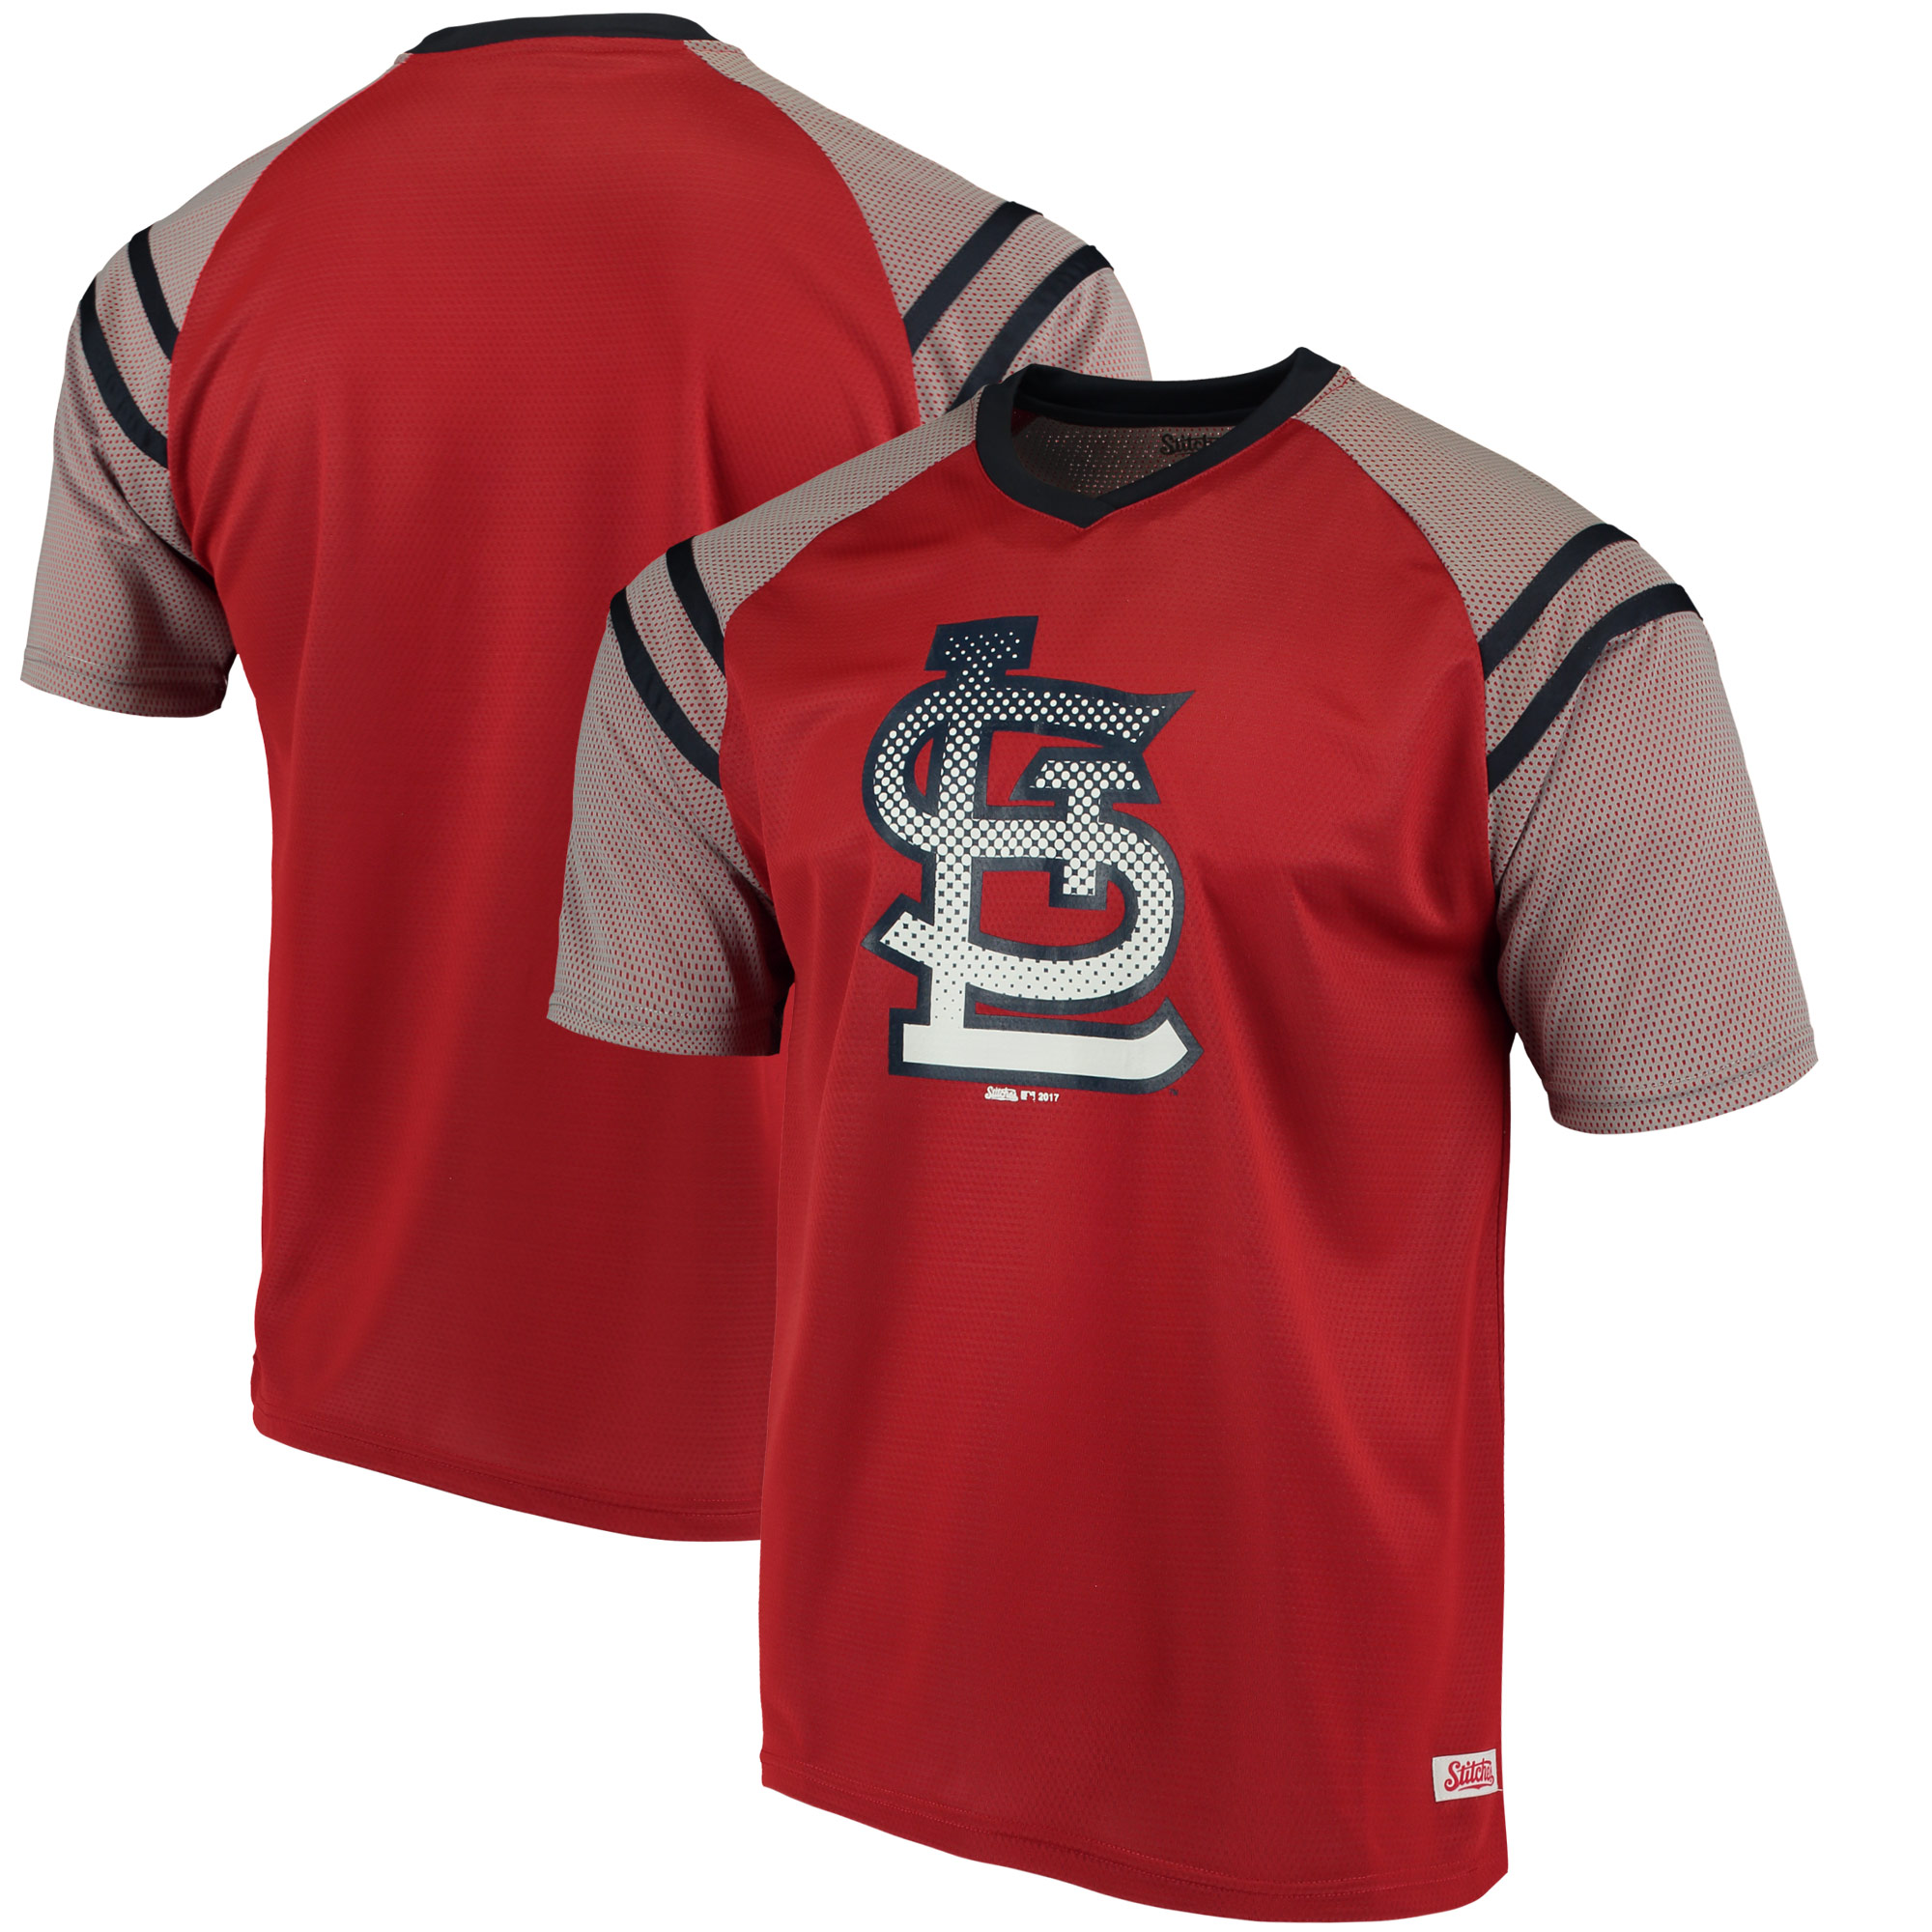 St. Louis Cardinals Stitches V-Neck Mesh Jersey T-Shirt - Red/Navy